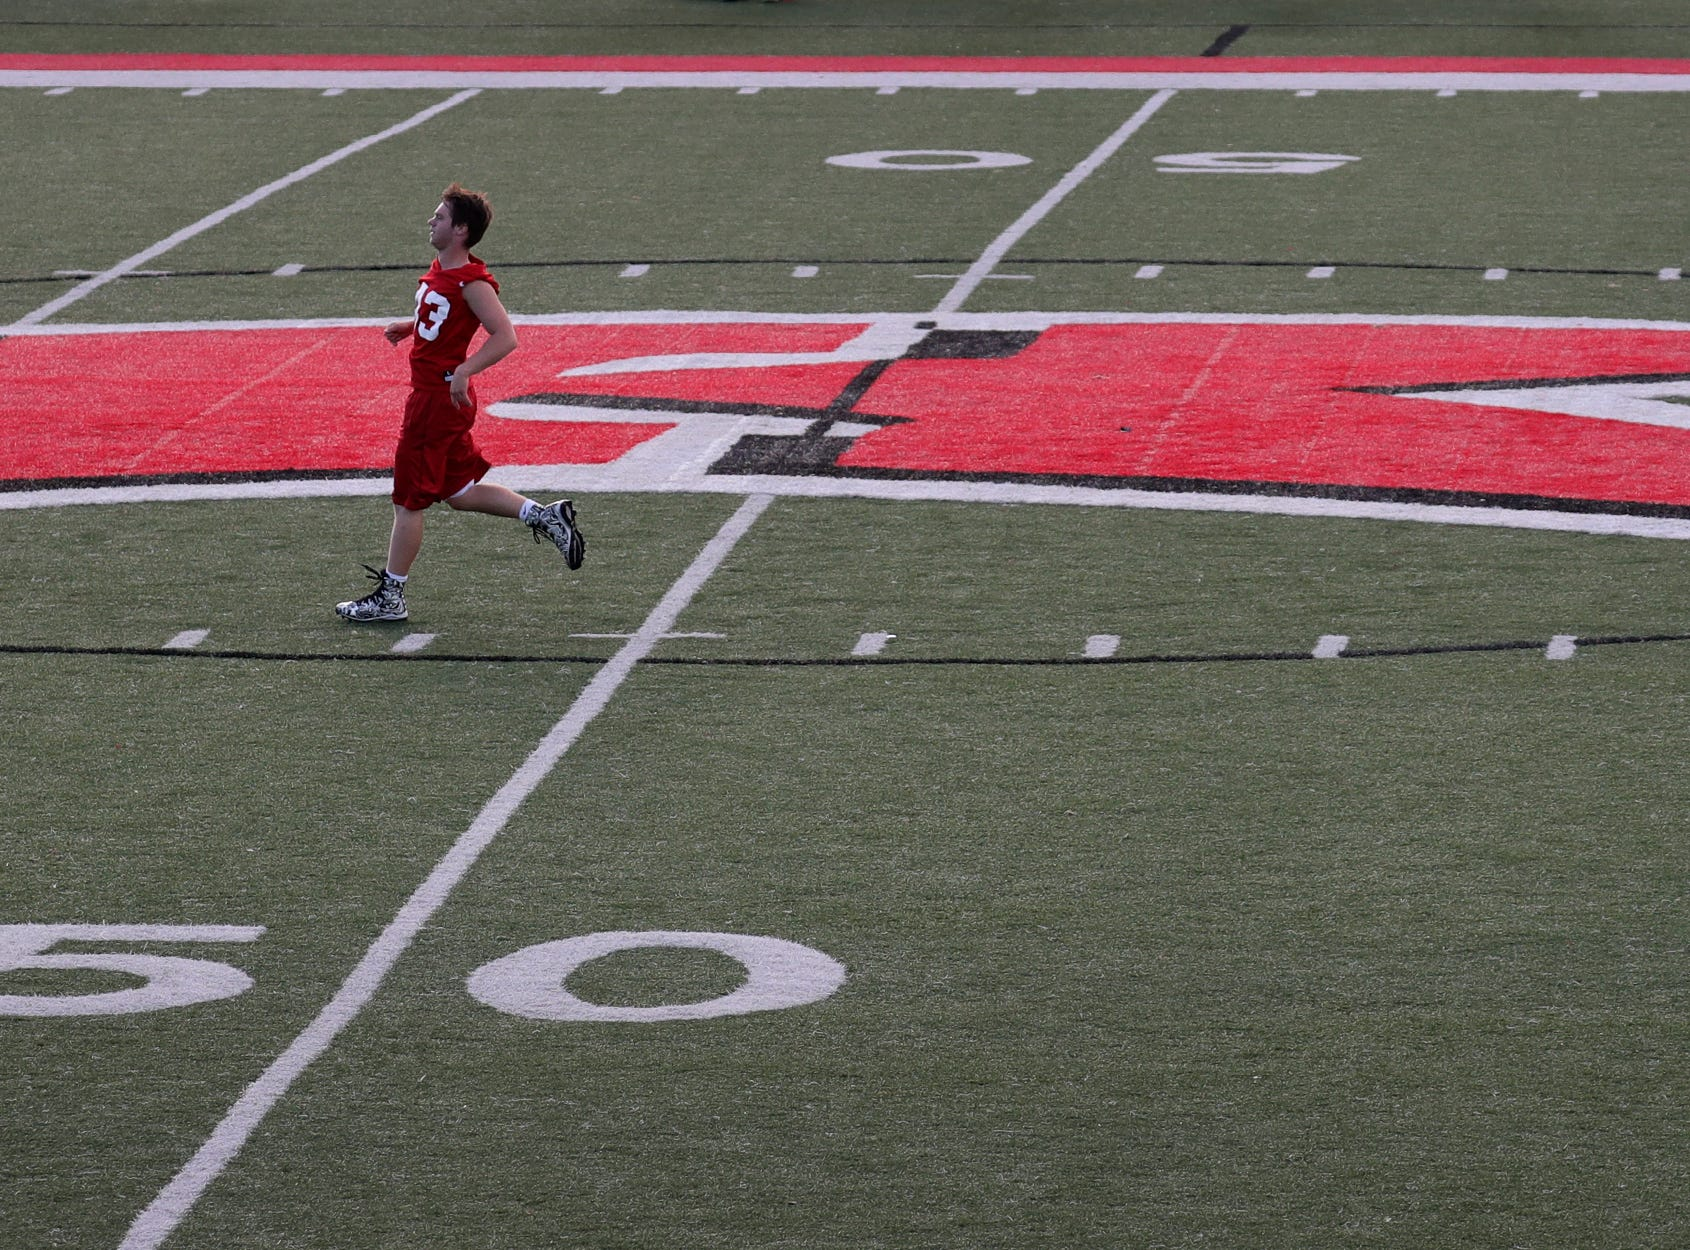 Caleb Briski warms up during the Kimberly High School football practice Wednesday, August 1, 2018, at Papermaker Stadium in Kimberly, Wis. 